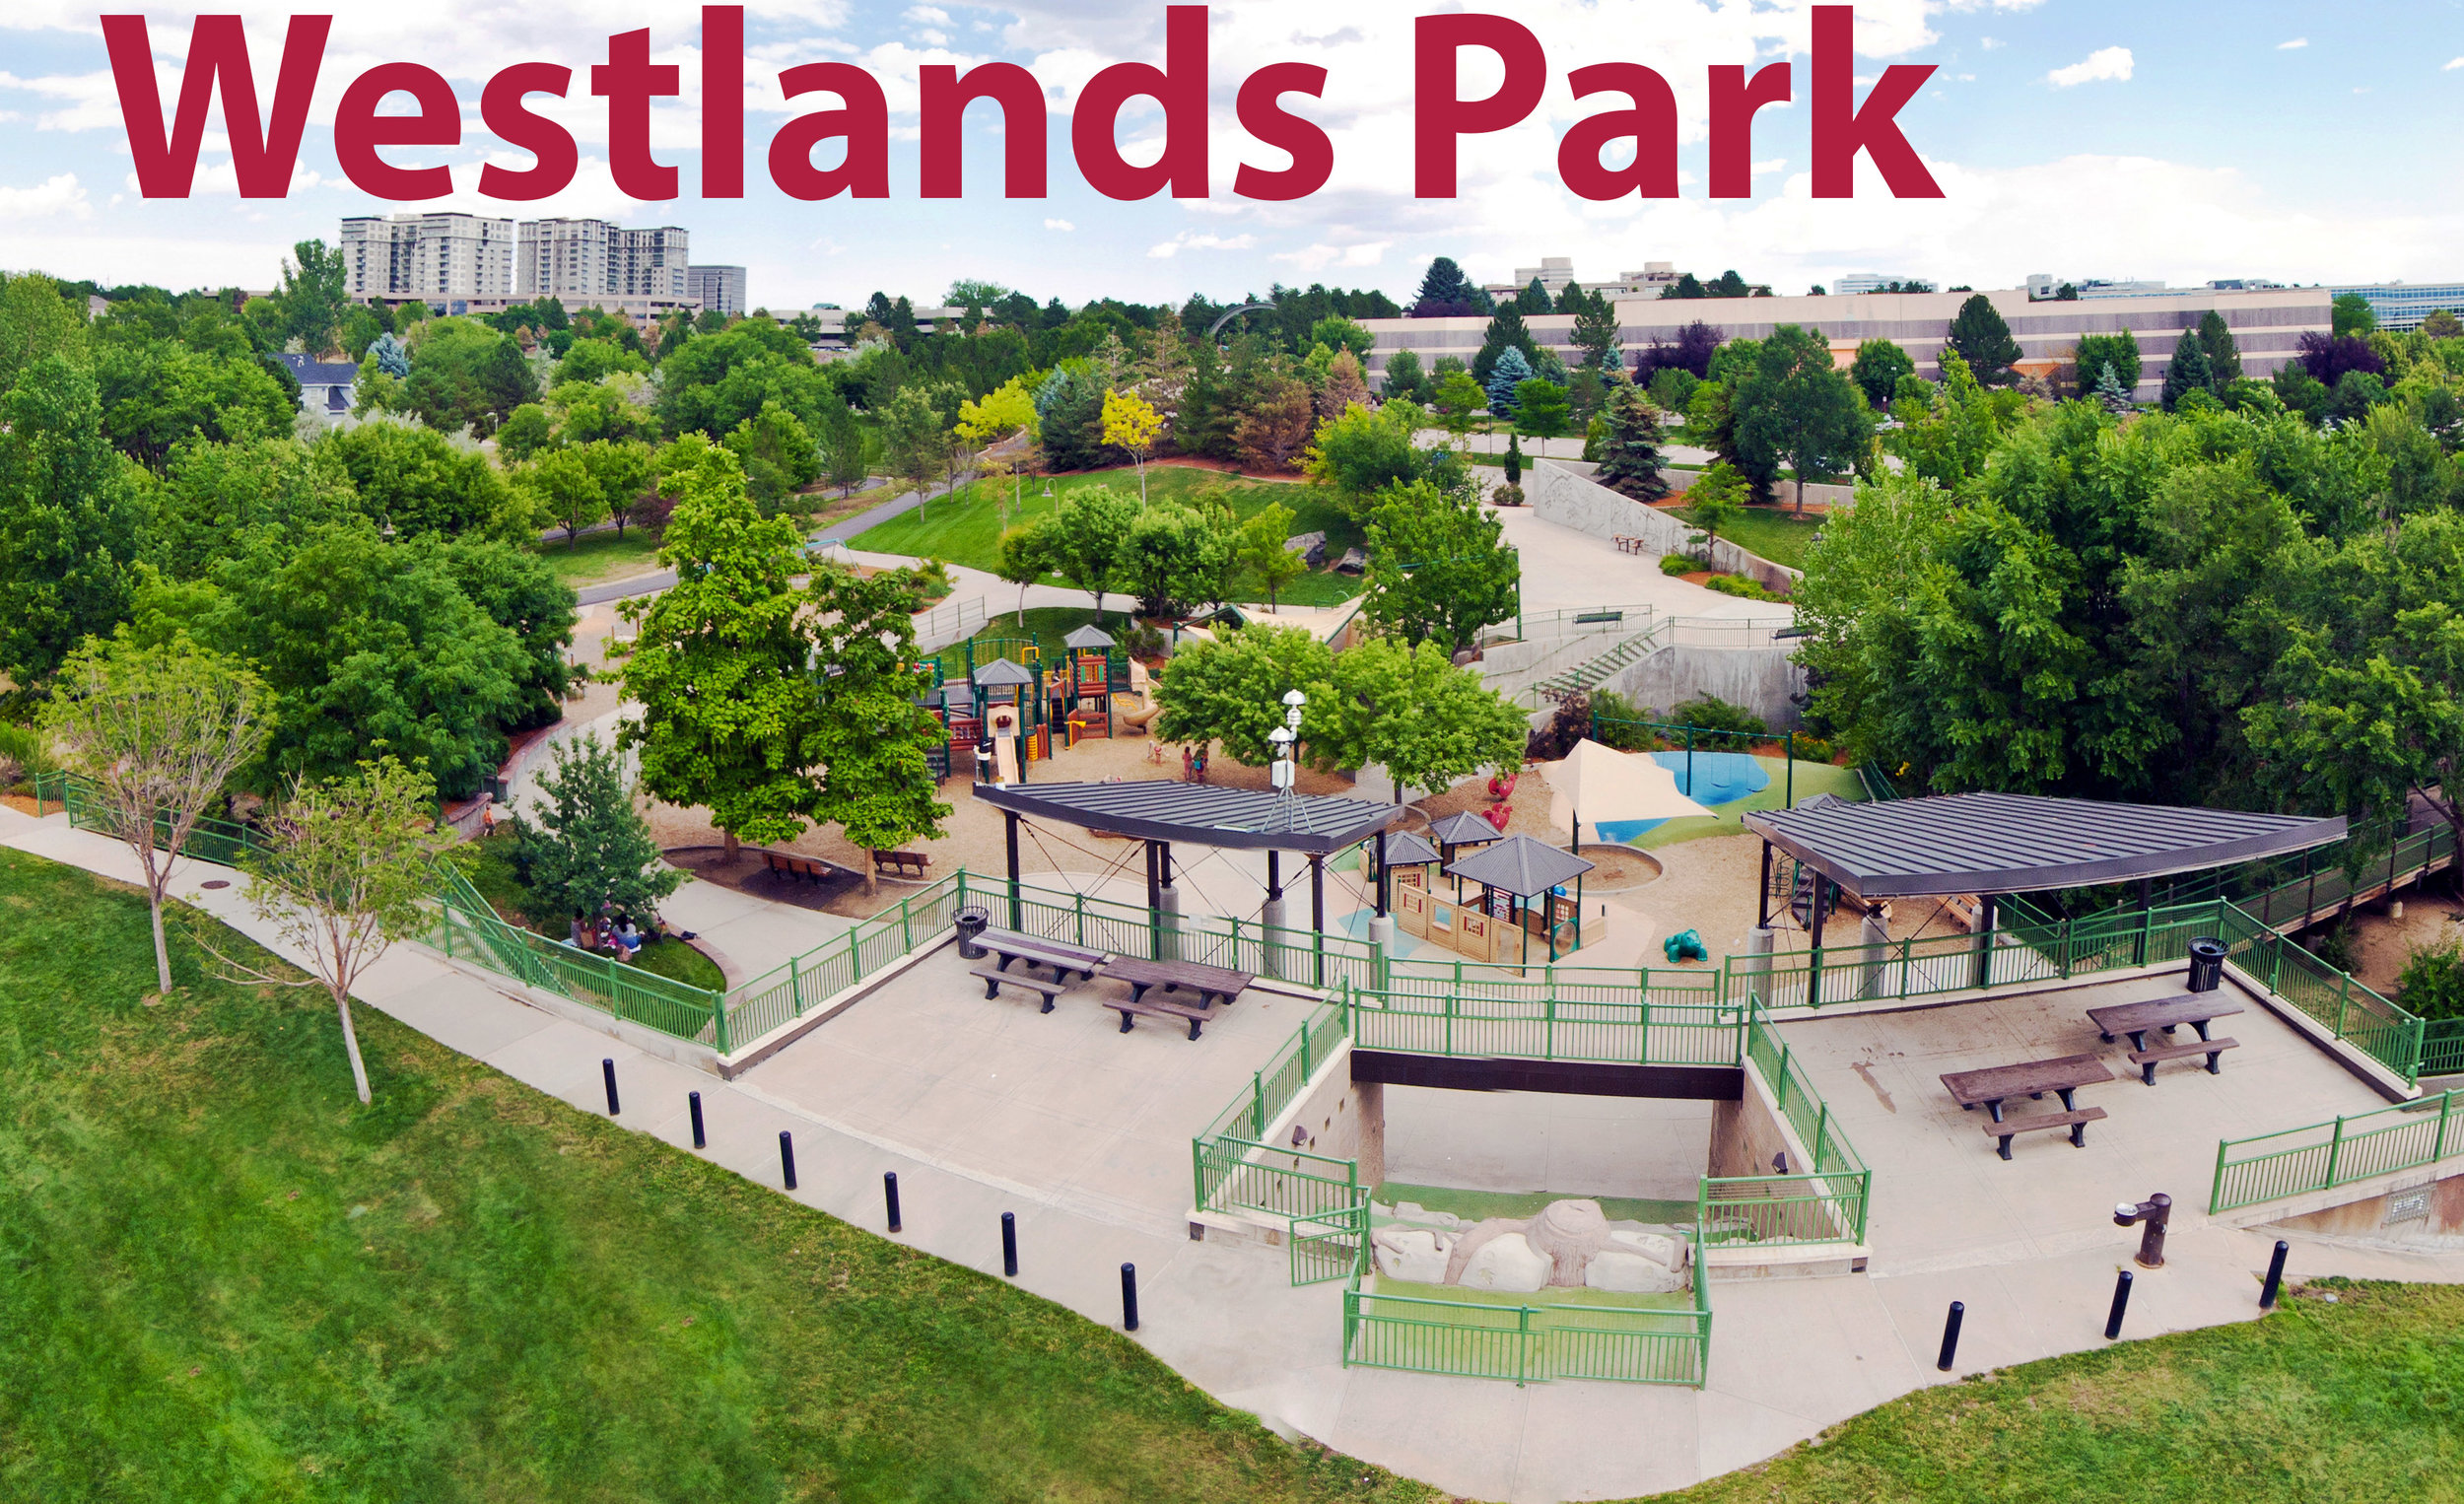 Robby's    Westlands Park    in Greenwood Village has for many years been at the top of the list for Denver's most visited parks in the Front Range.